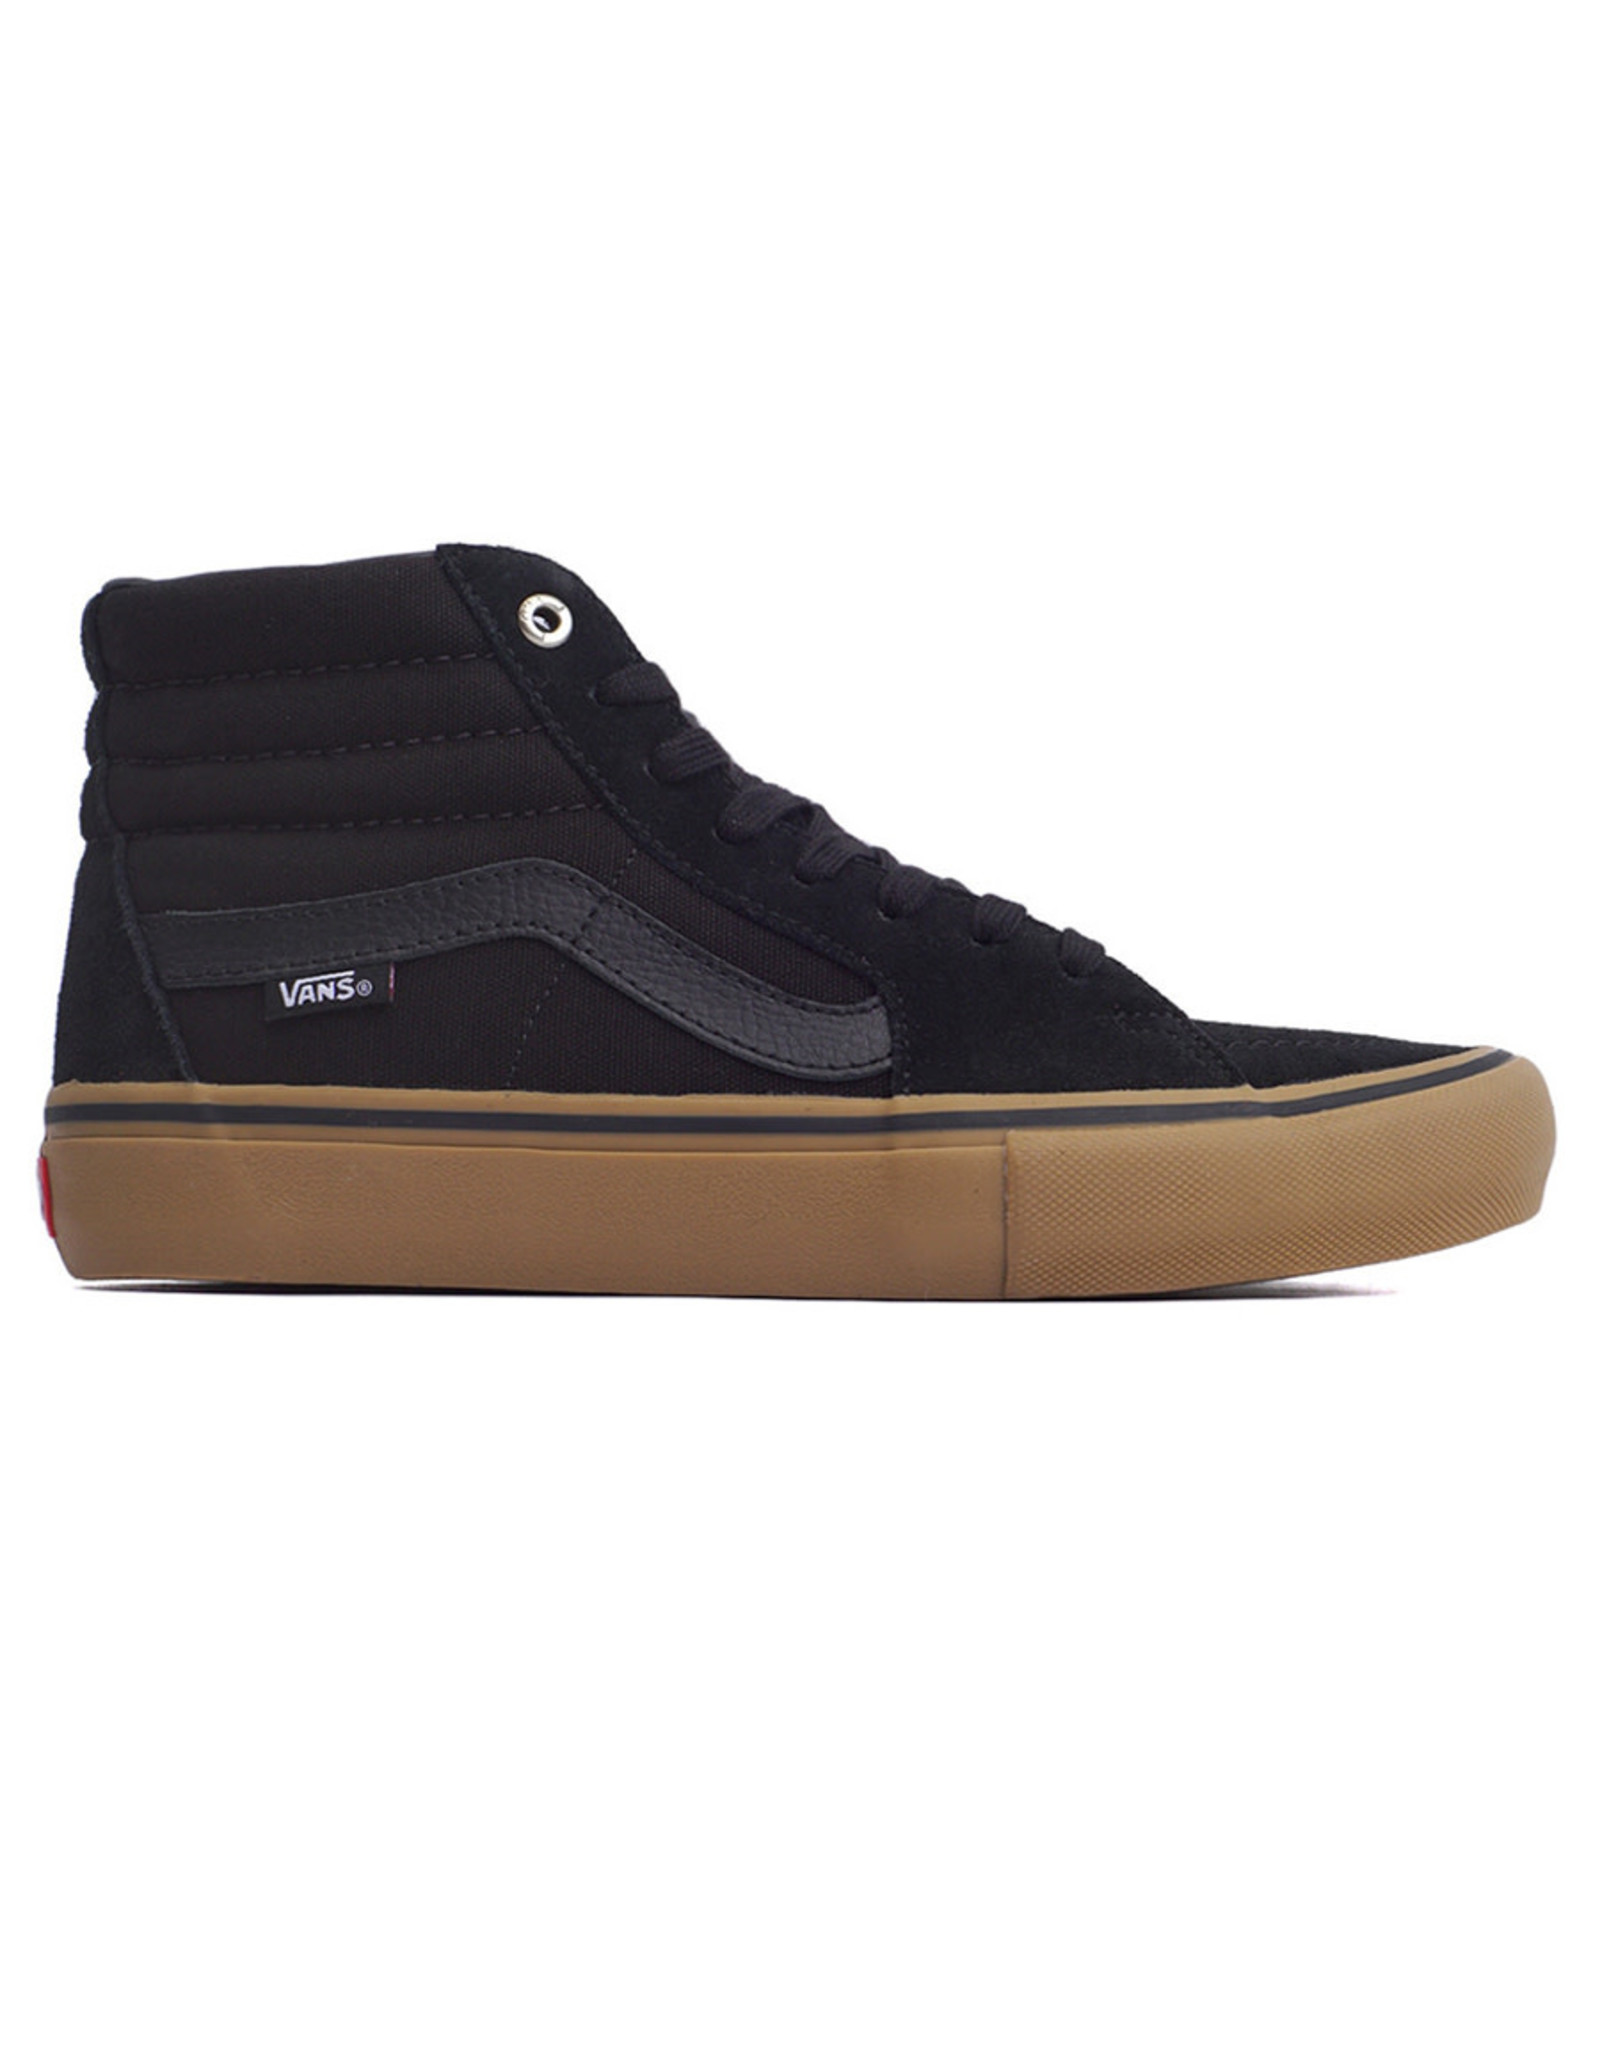 Vans Shoes Vans Shoe Pro Sk8-Hi (Black/Gum)